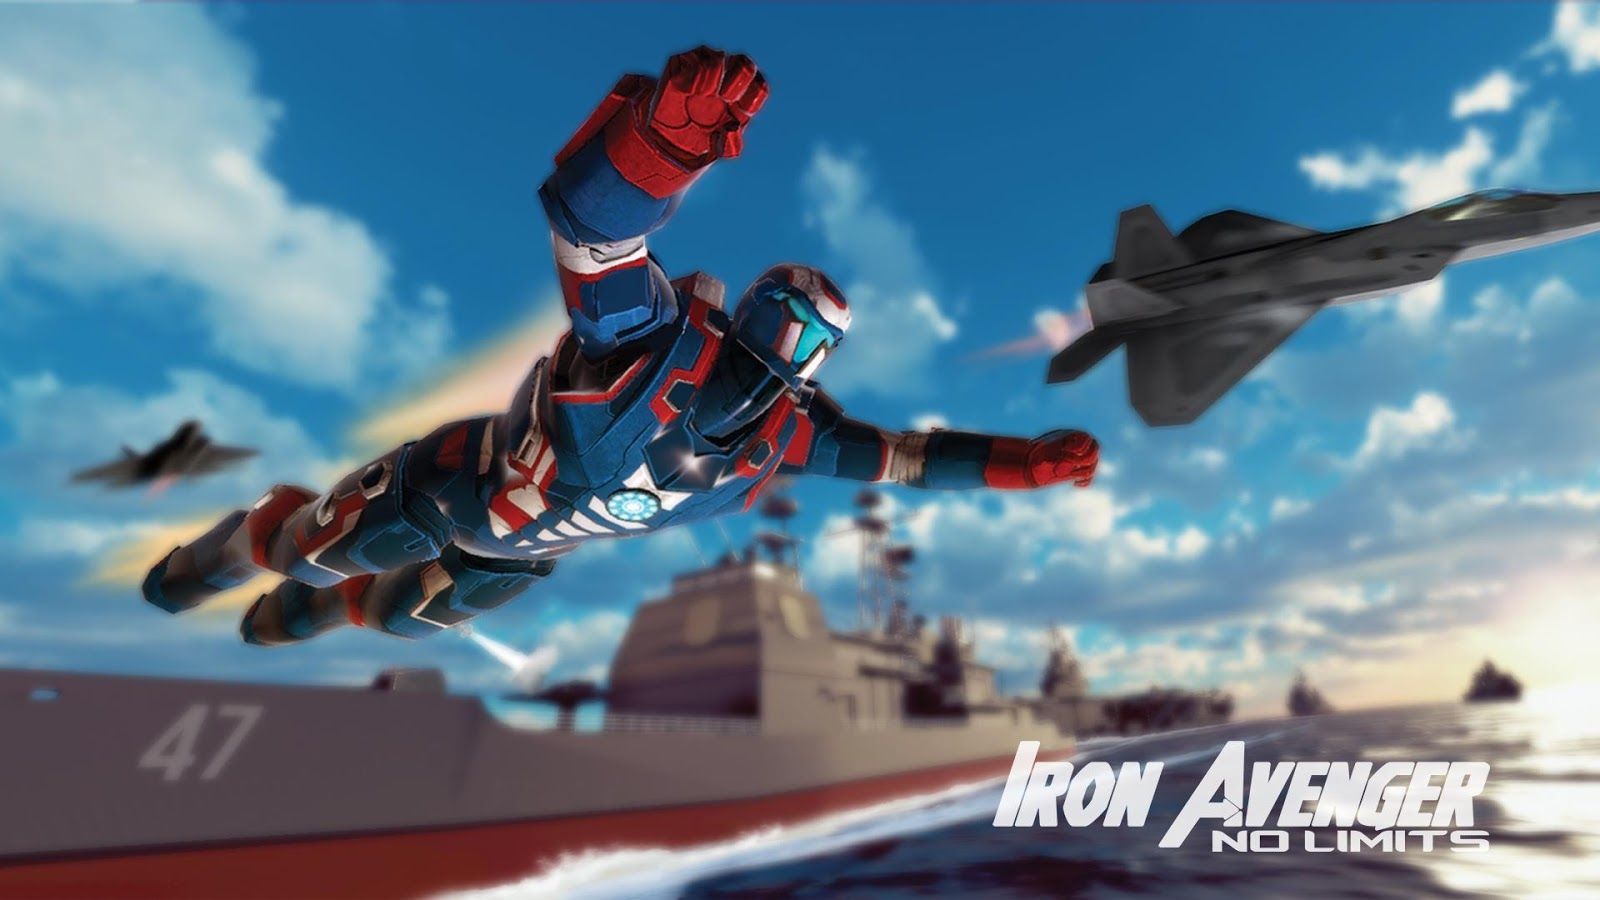 Iron Avenger 2 : No Limits Screenshot 4